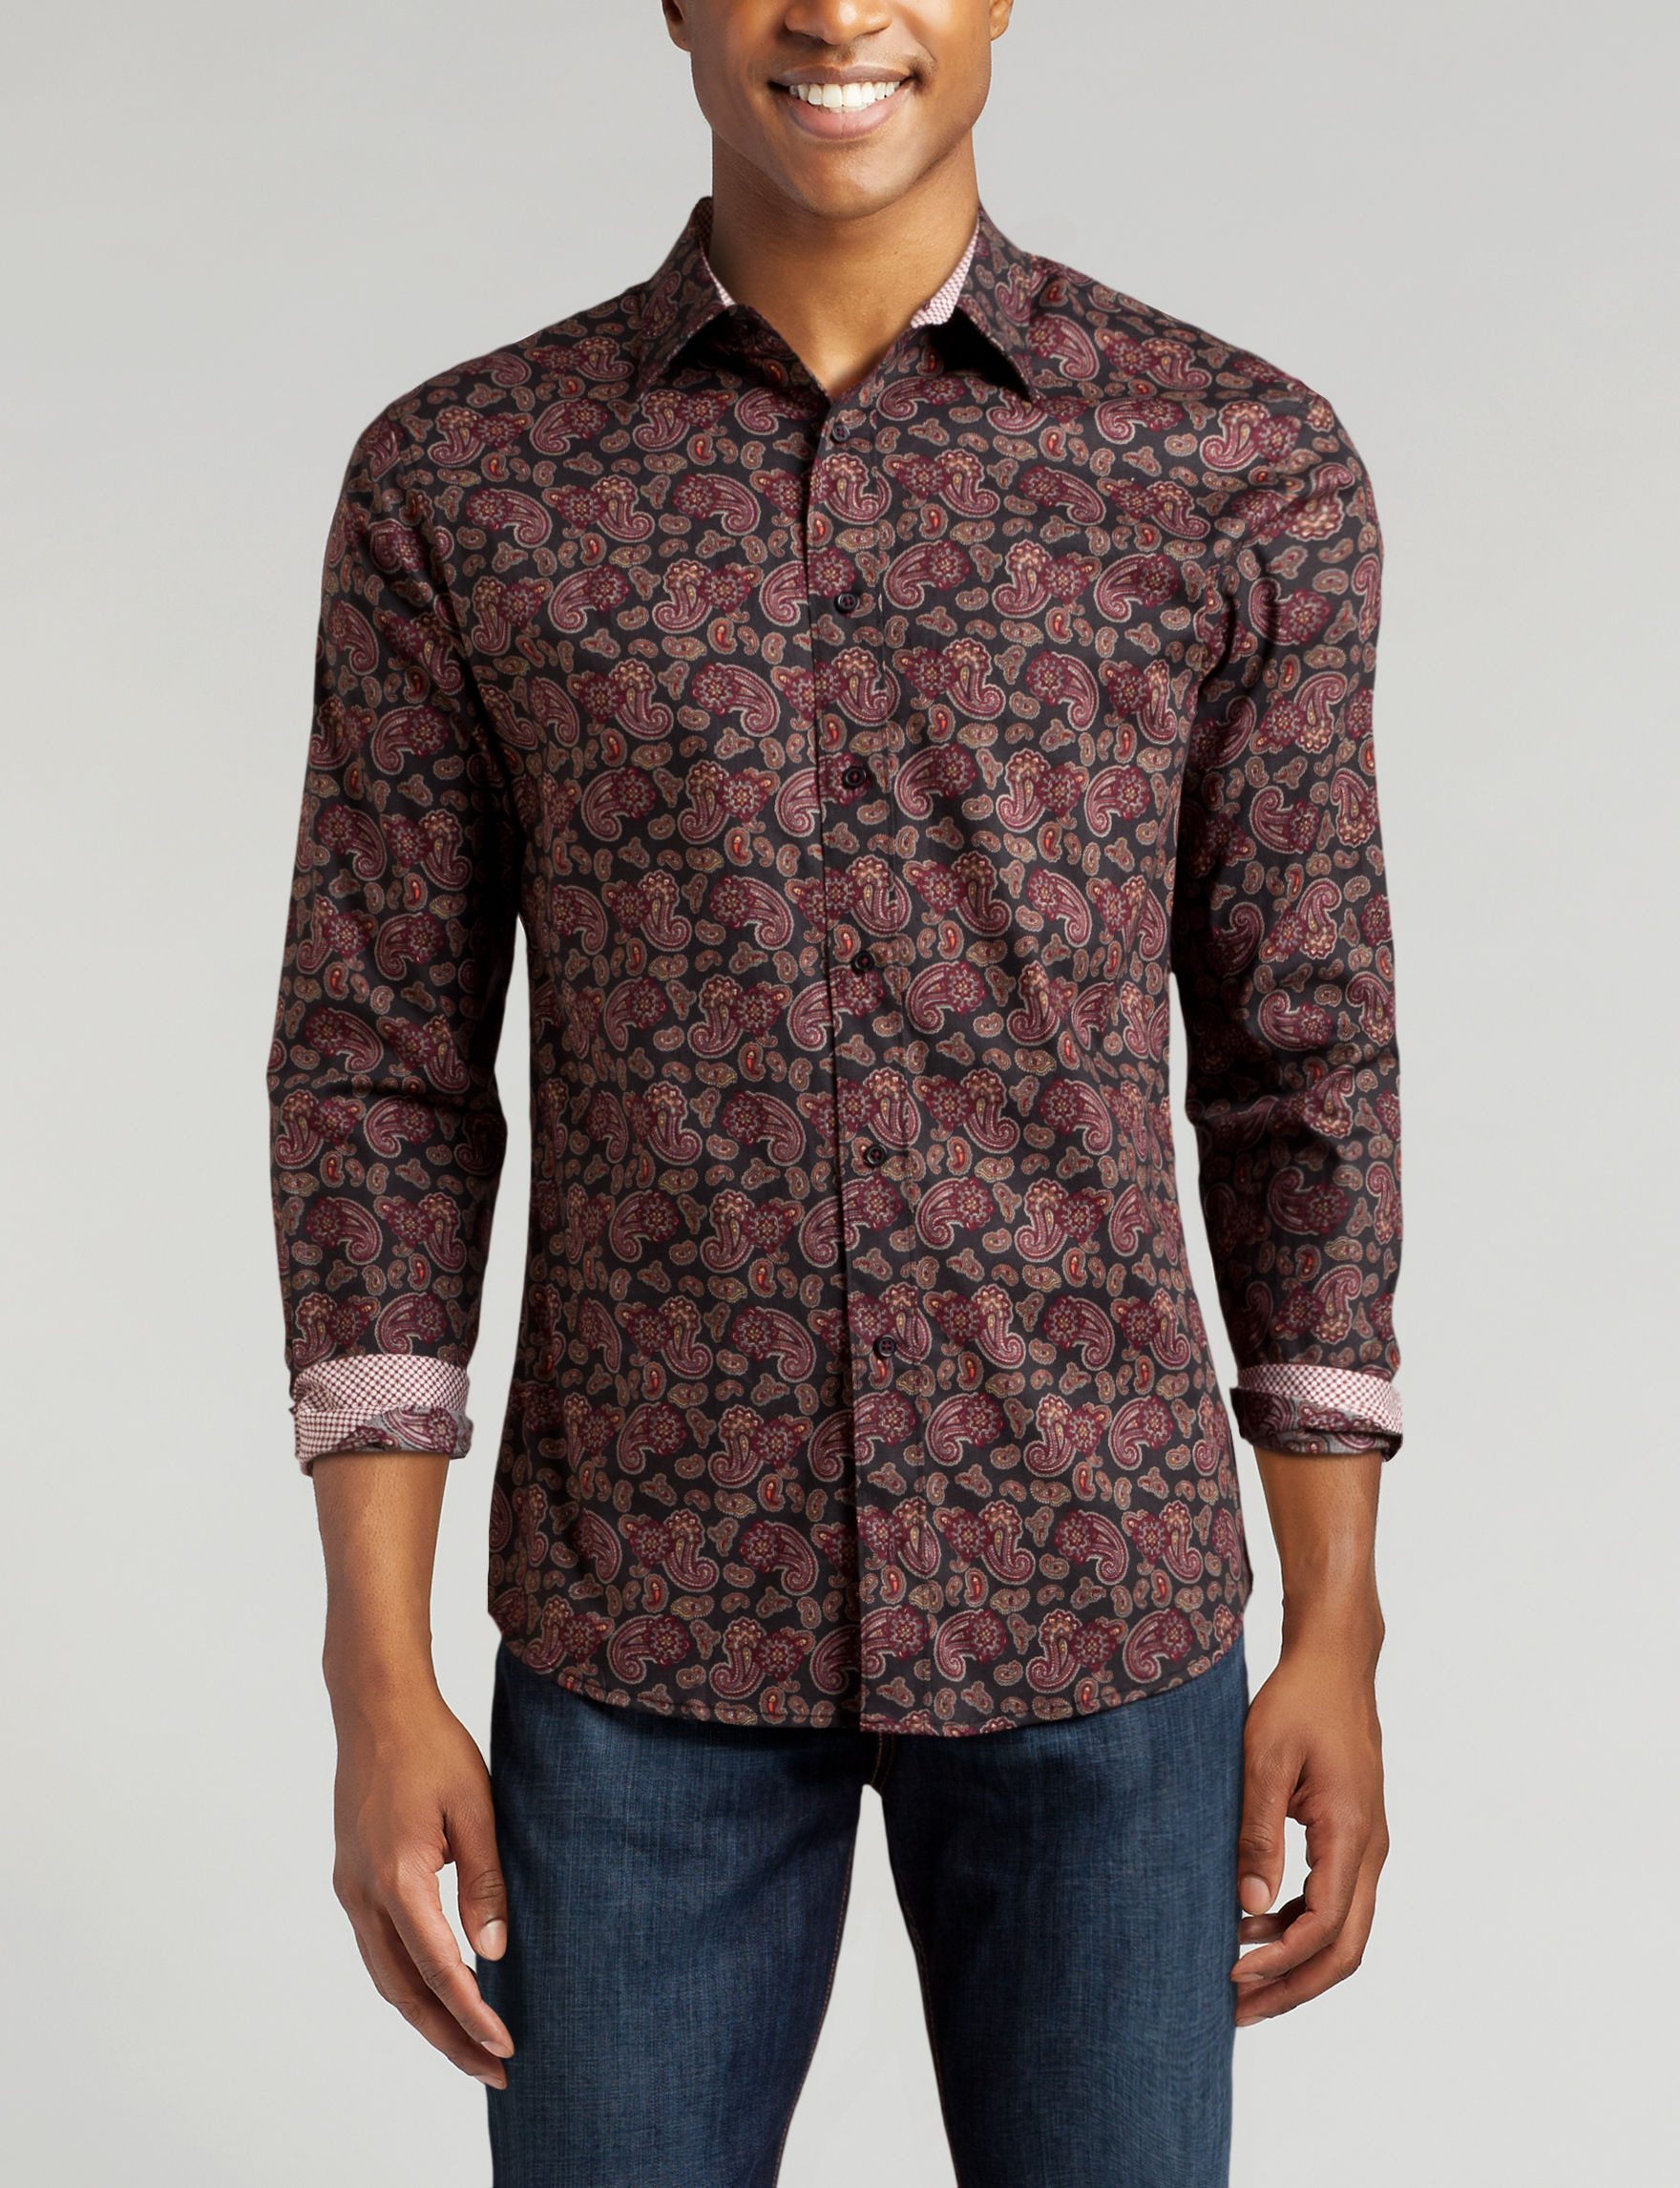 Signature Studio Burgundy Paisley Casual Button Down Shirts